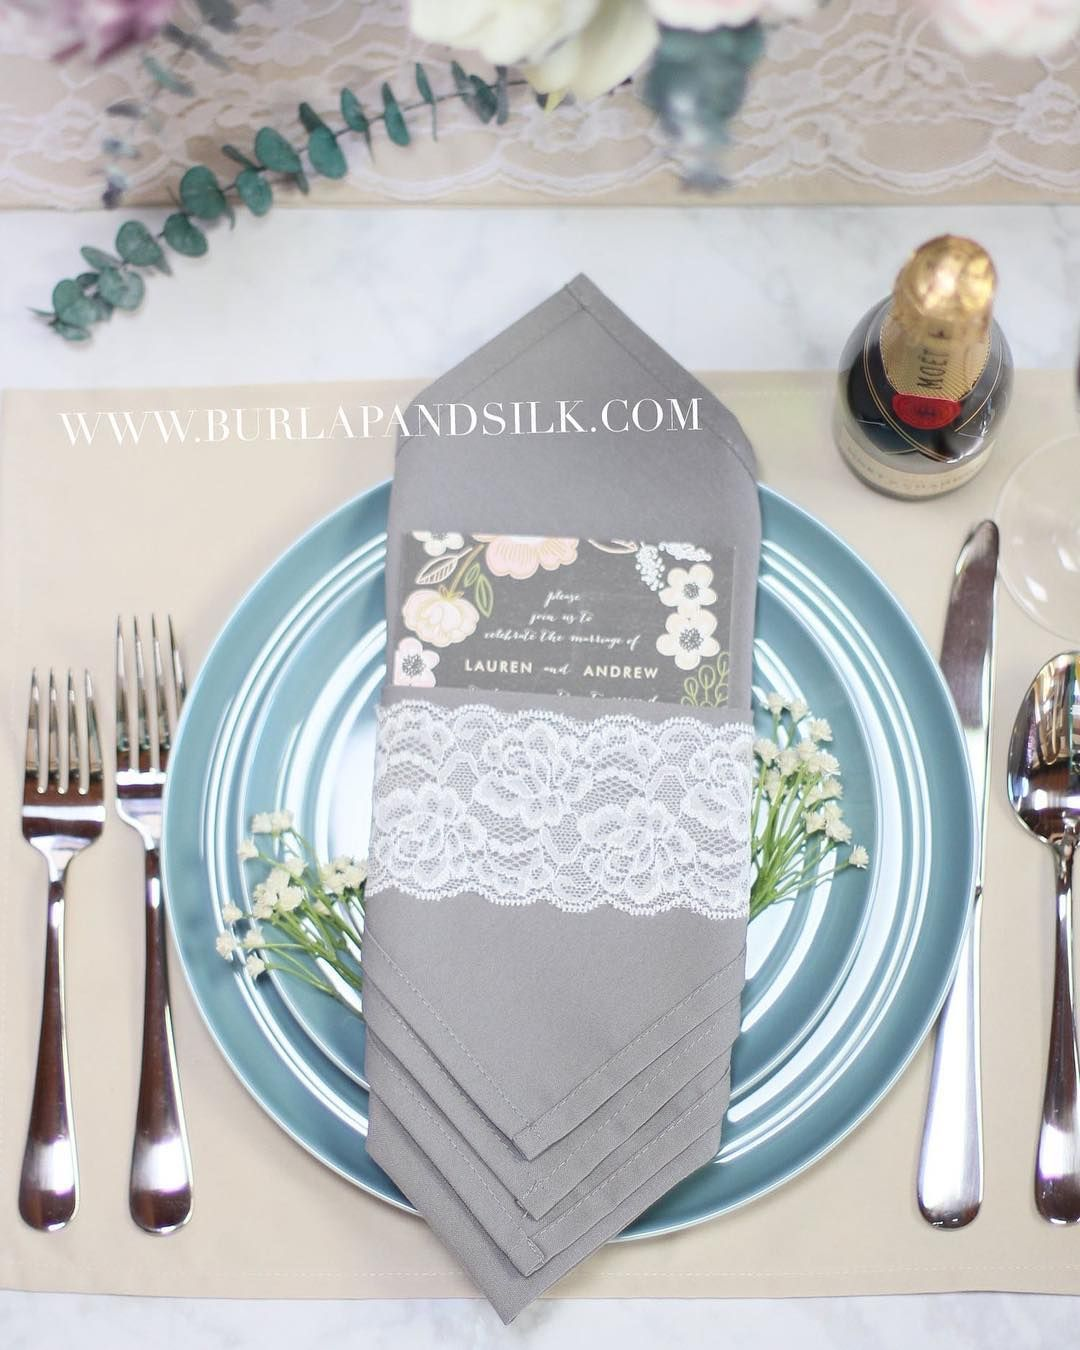 Wedding Linens Direct.Pin By Burlap And Silk On Weddings Wedding Table Linens Wedding